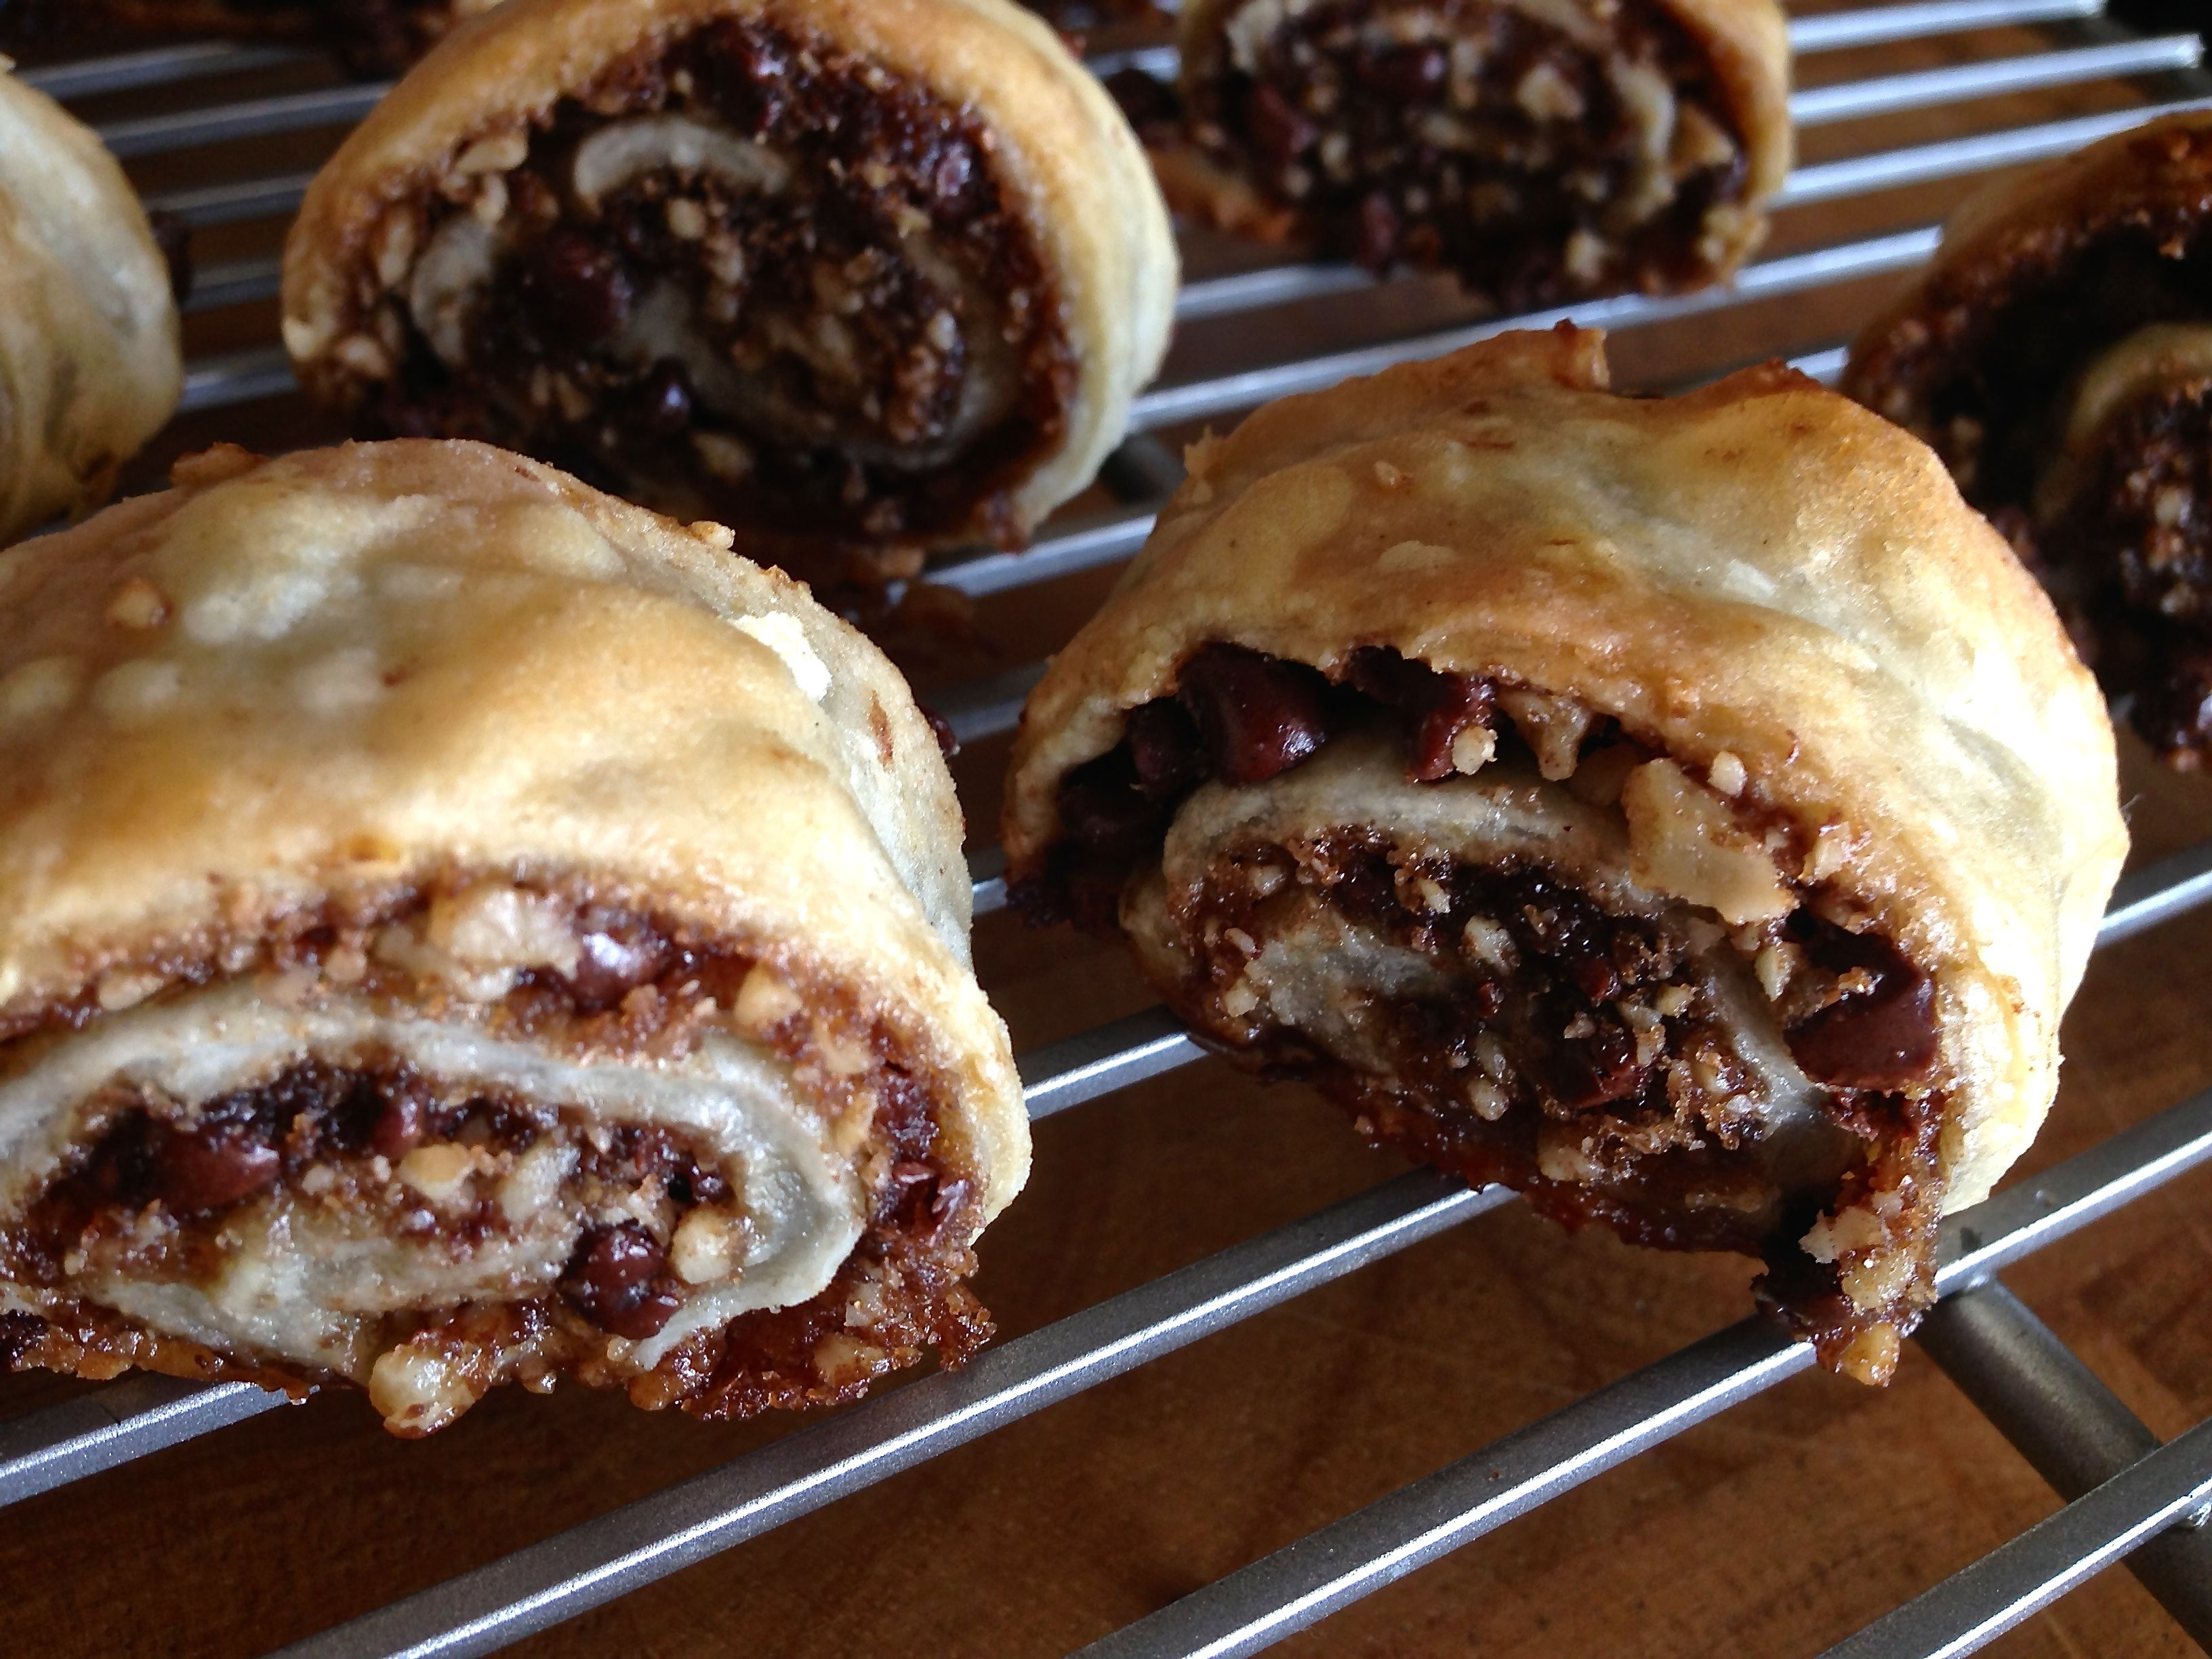 ... rugelach recipe was submitted by Joyce Kurtz, with additional tips by